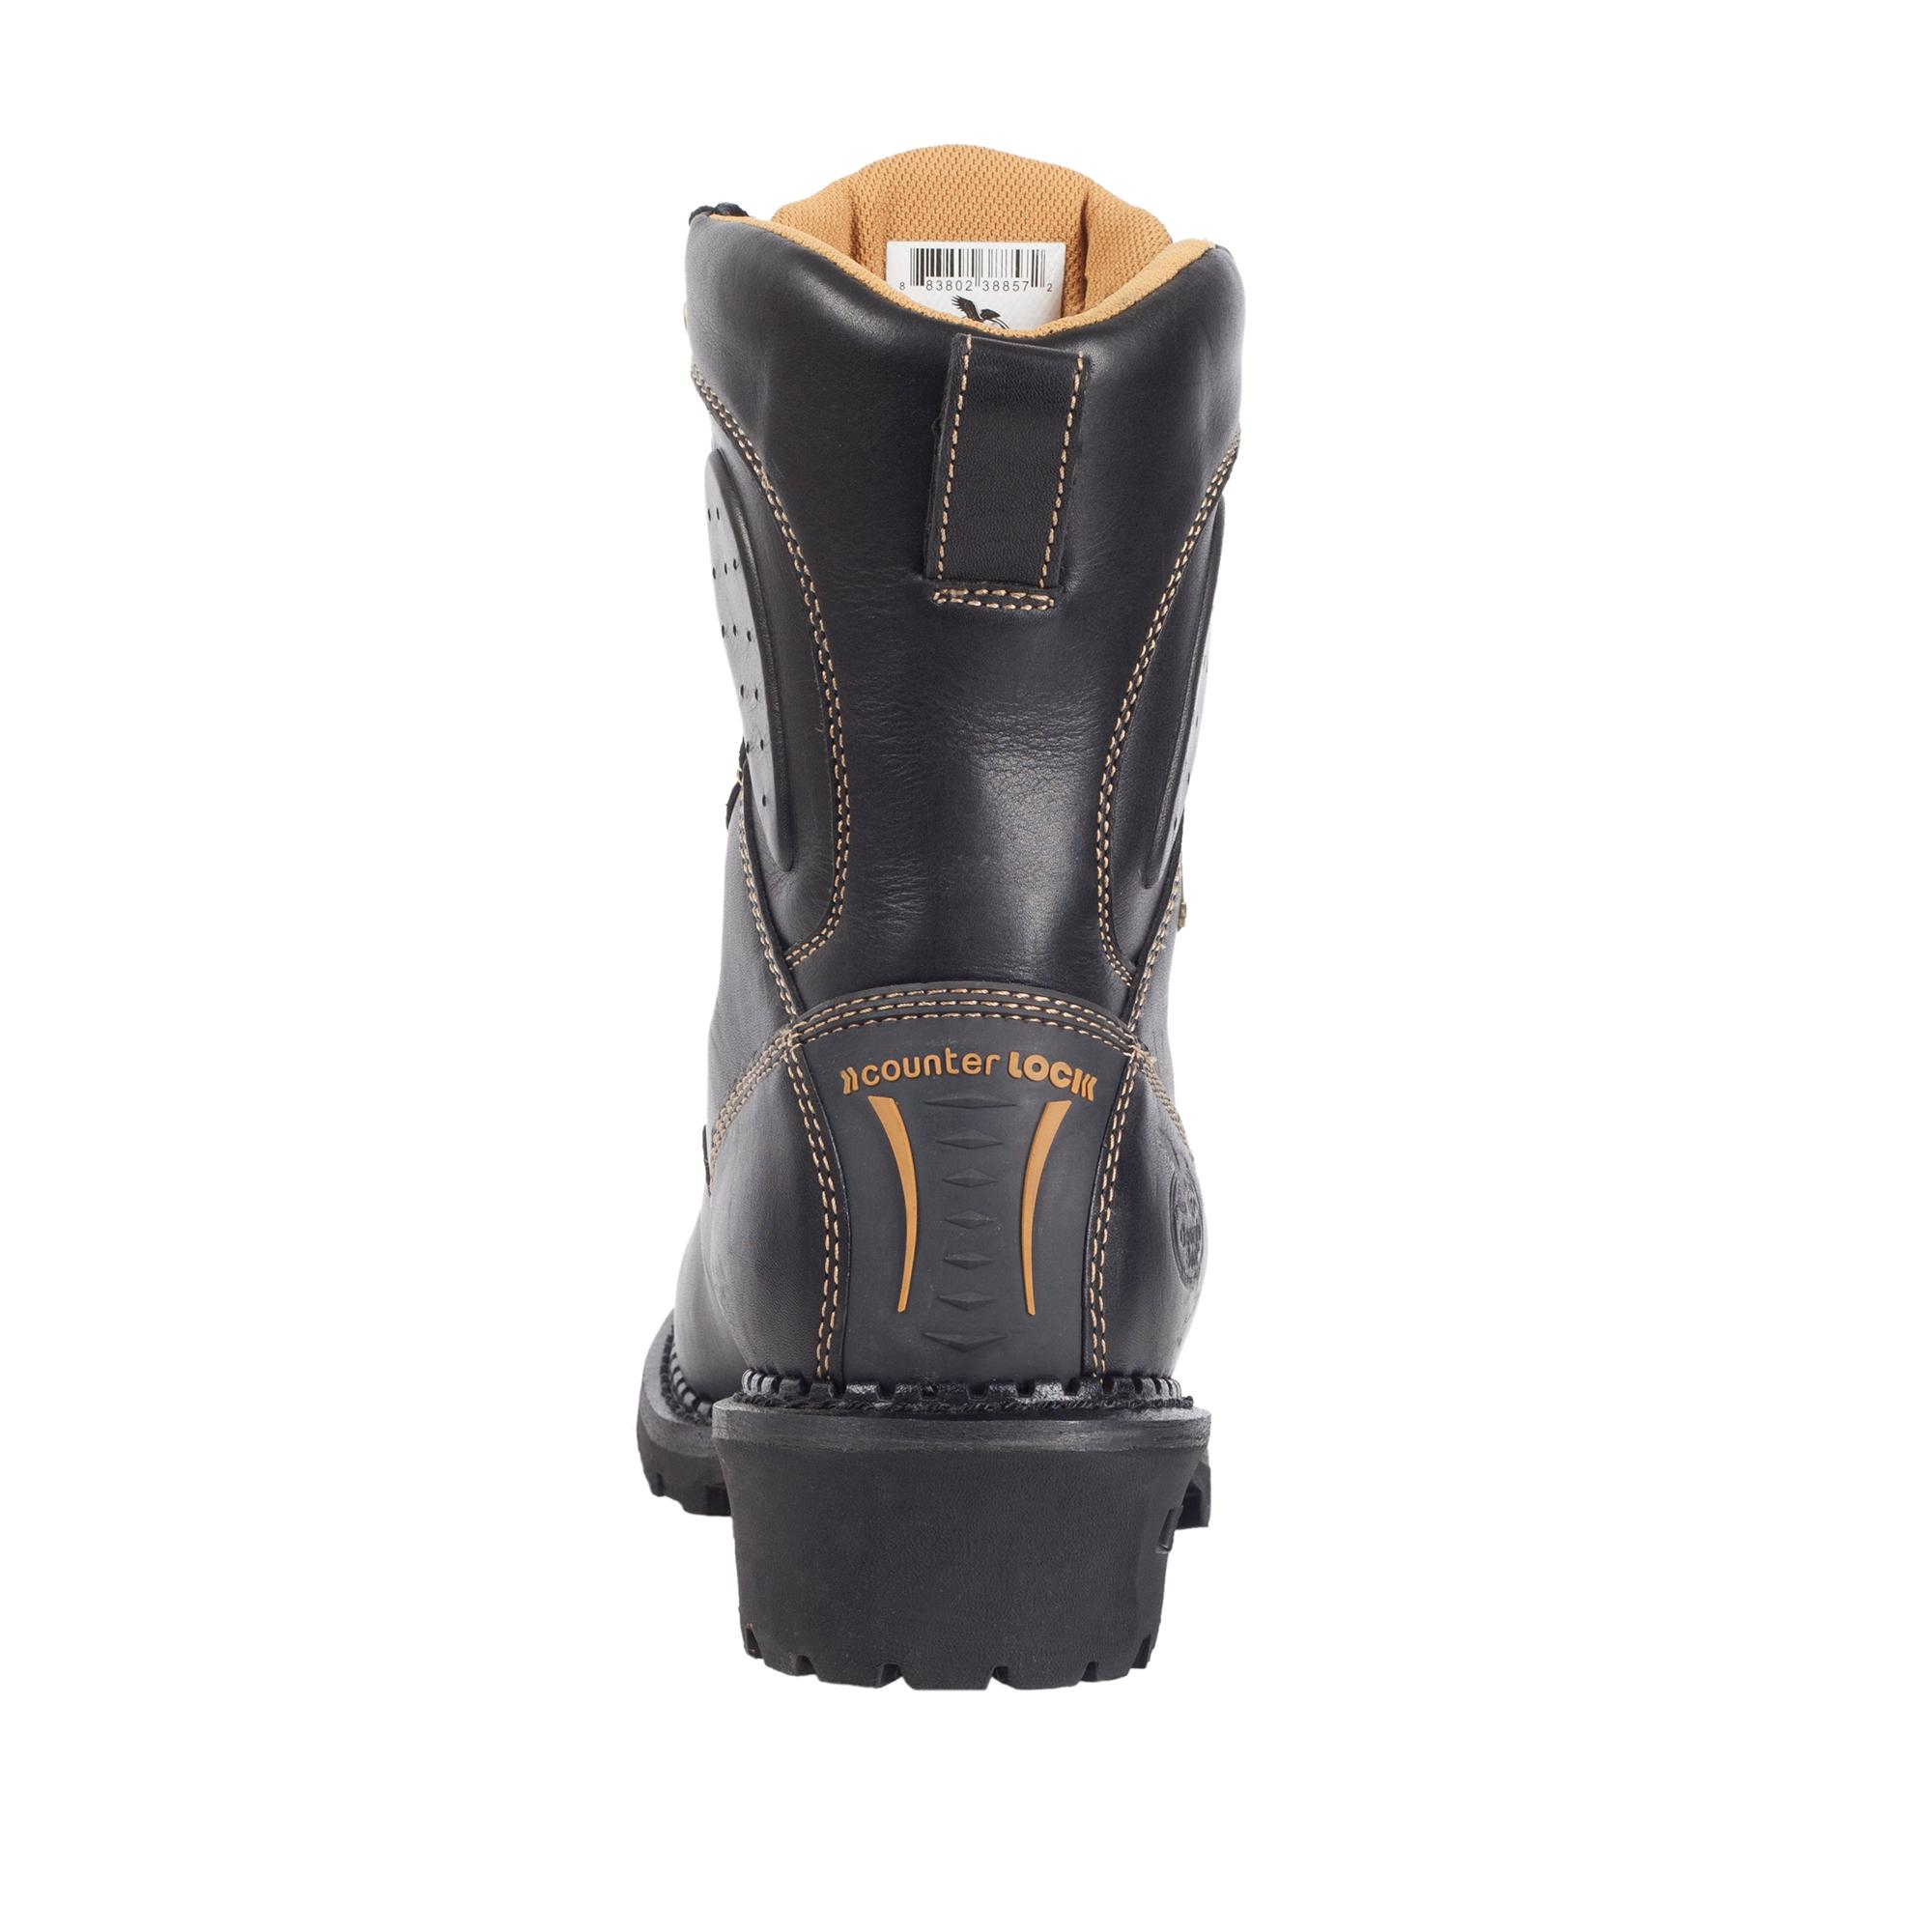 cascade mt footwear vernon p most keen men pdp brown s comforter boots steel small boot in composite comfortable toe m